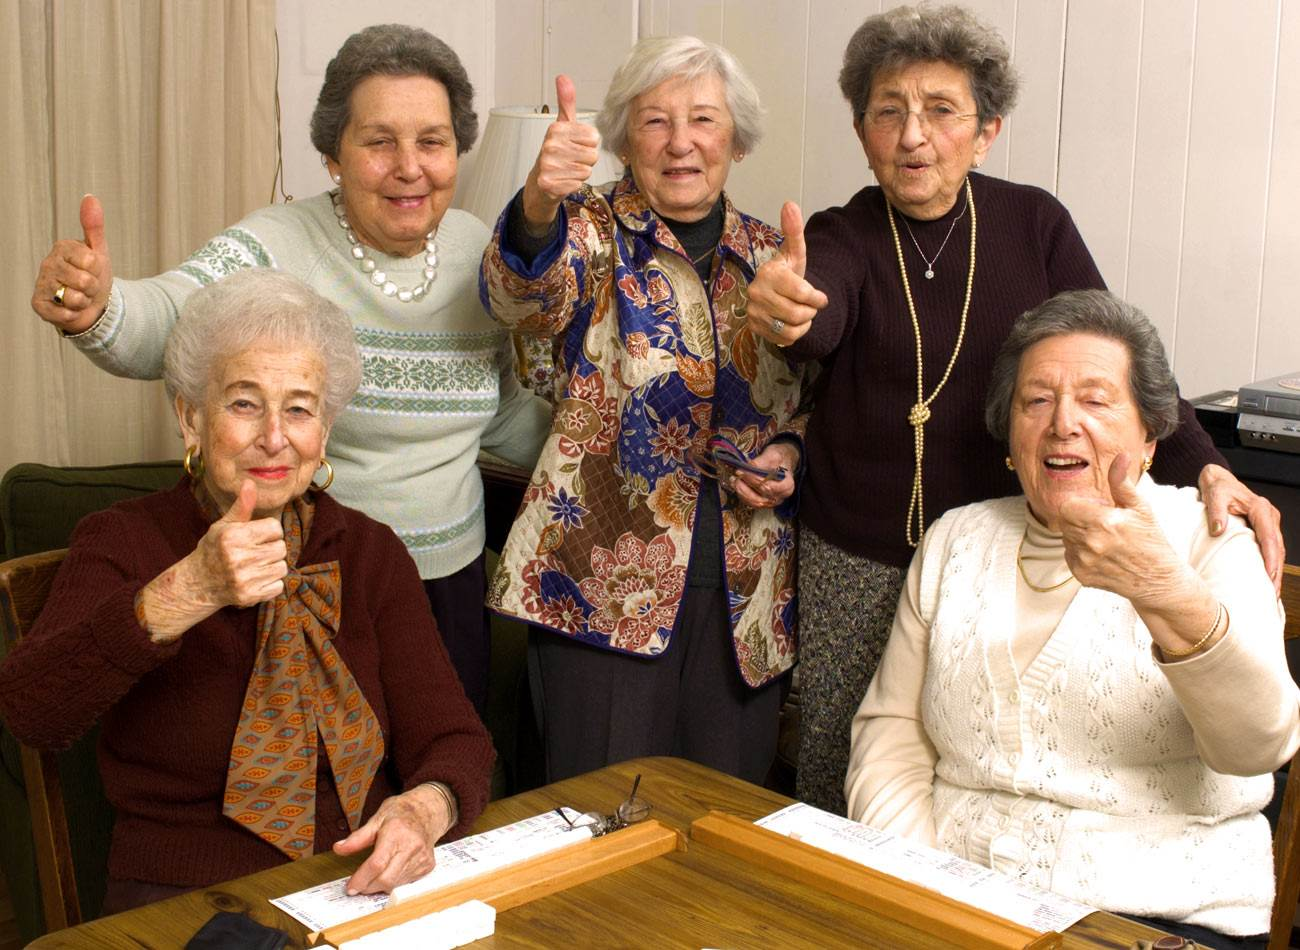 Women giving thumbs up